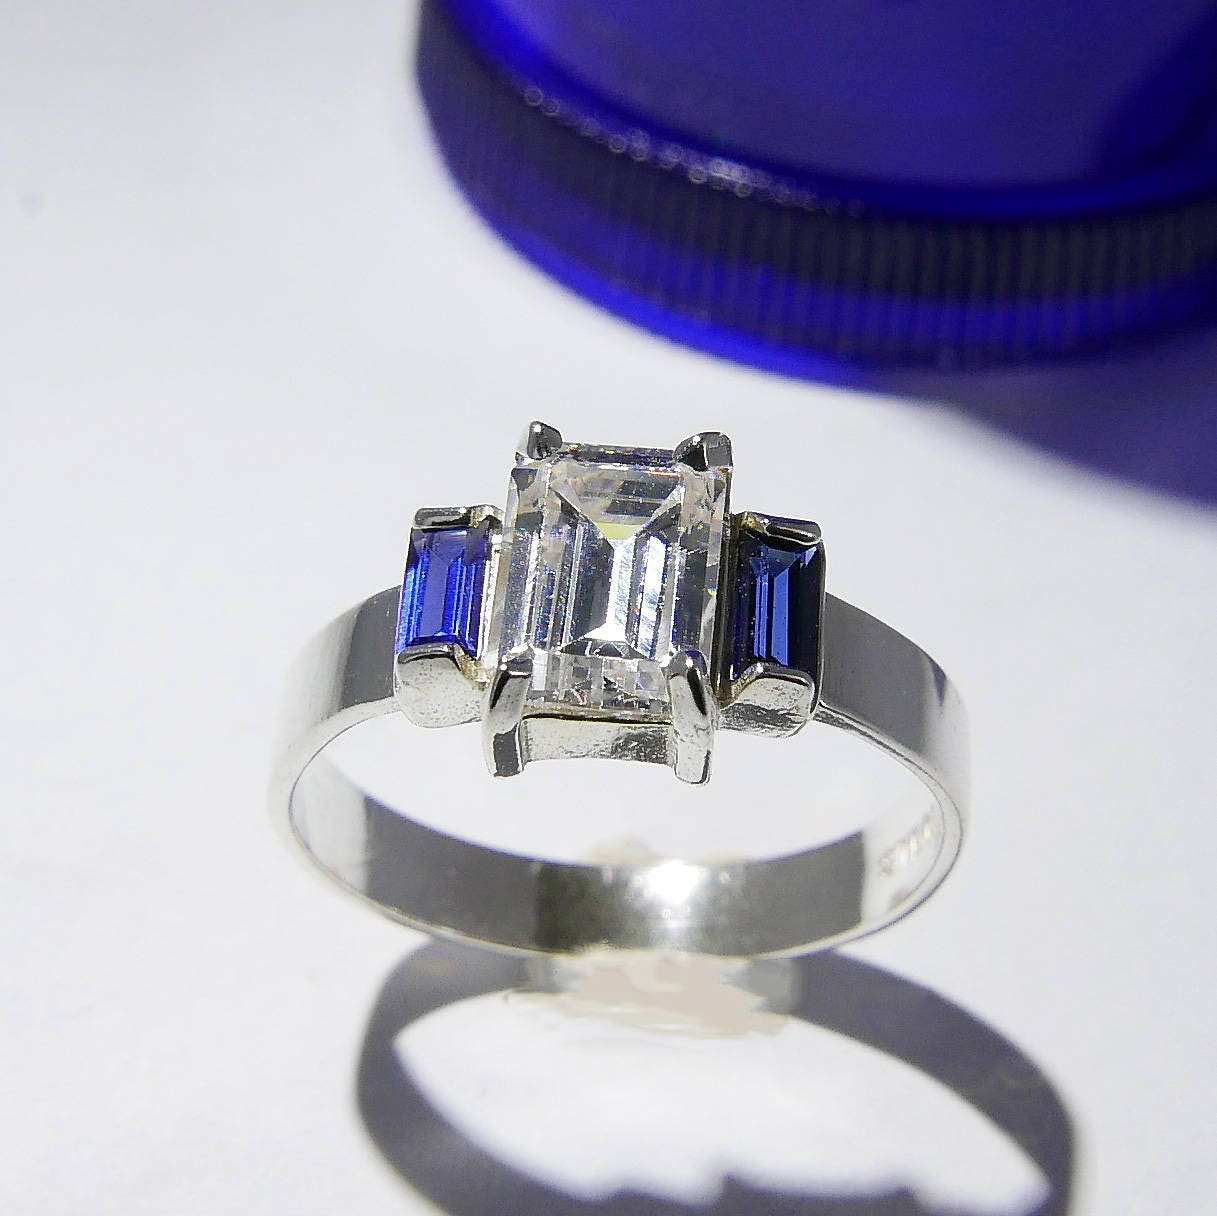 Princess Cut Synthetic Aquamarine Cubic Zirconia Three Stone Center Ring Sterling Silver Size 5